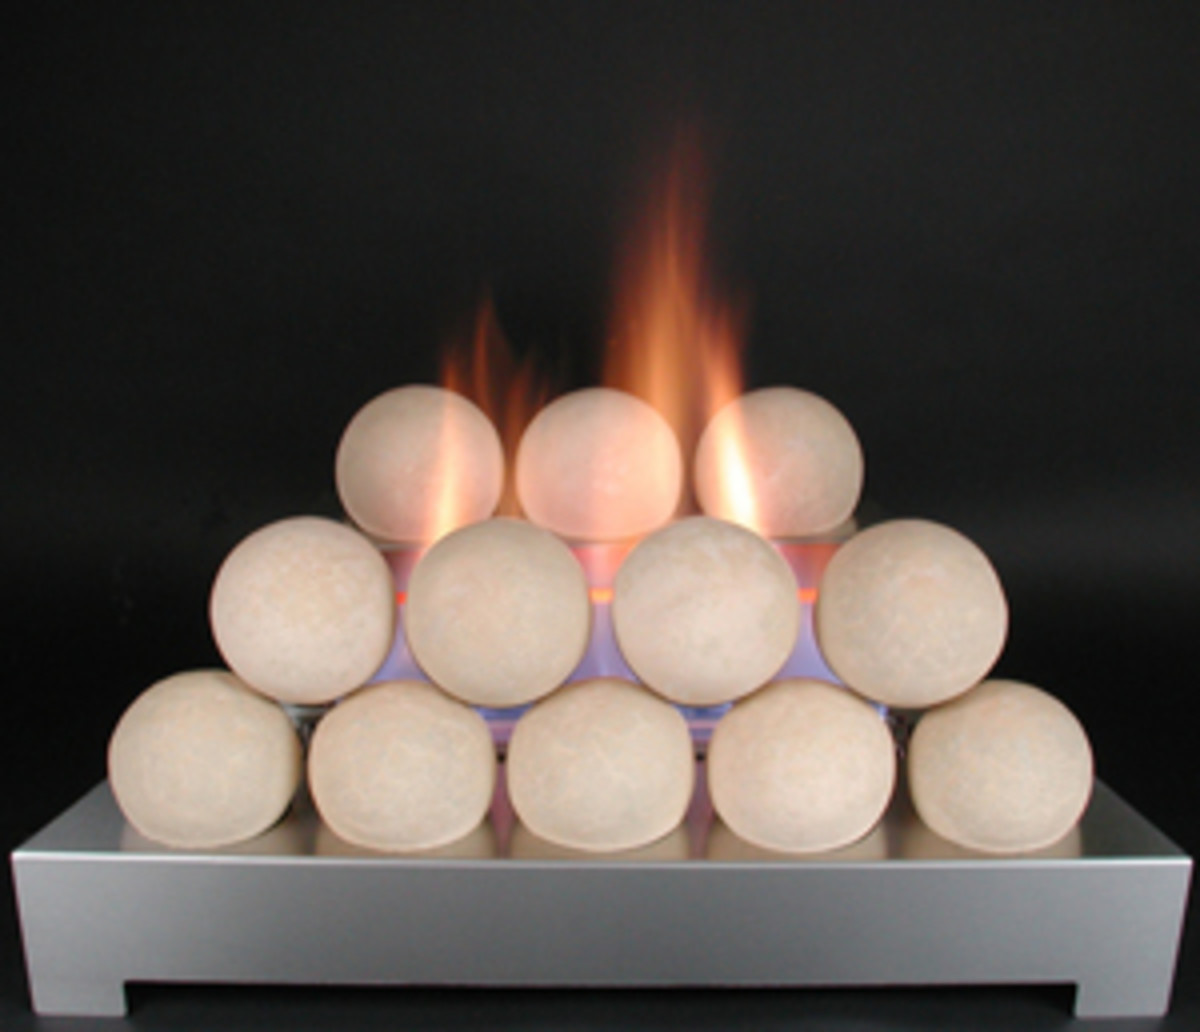 beige fireballs on a stainless steel burner in a ventless gas fireplace.